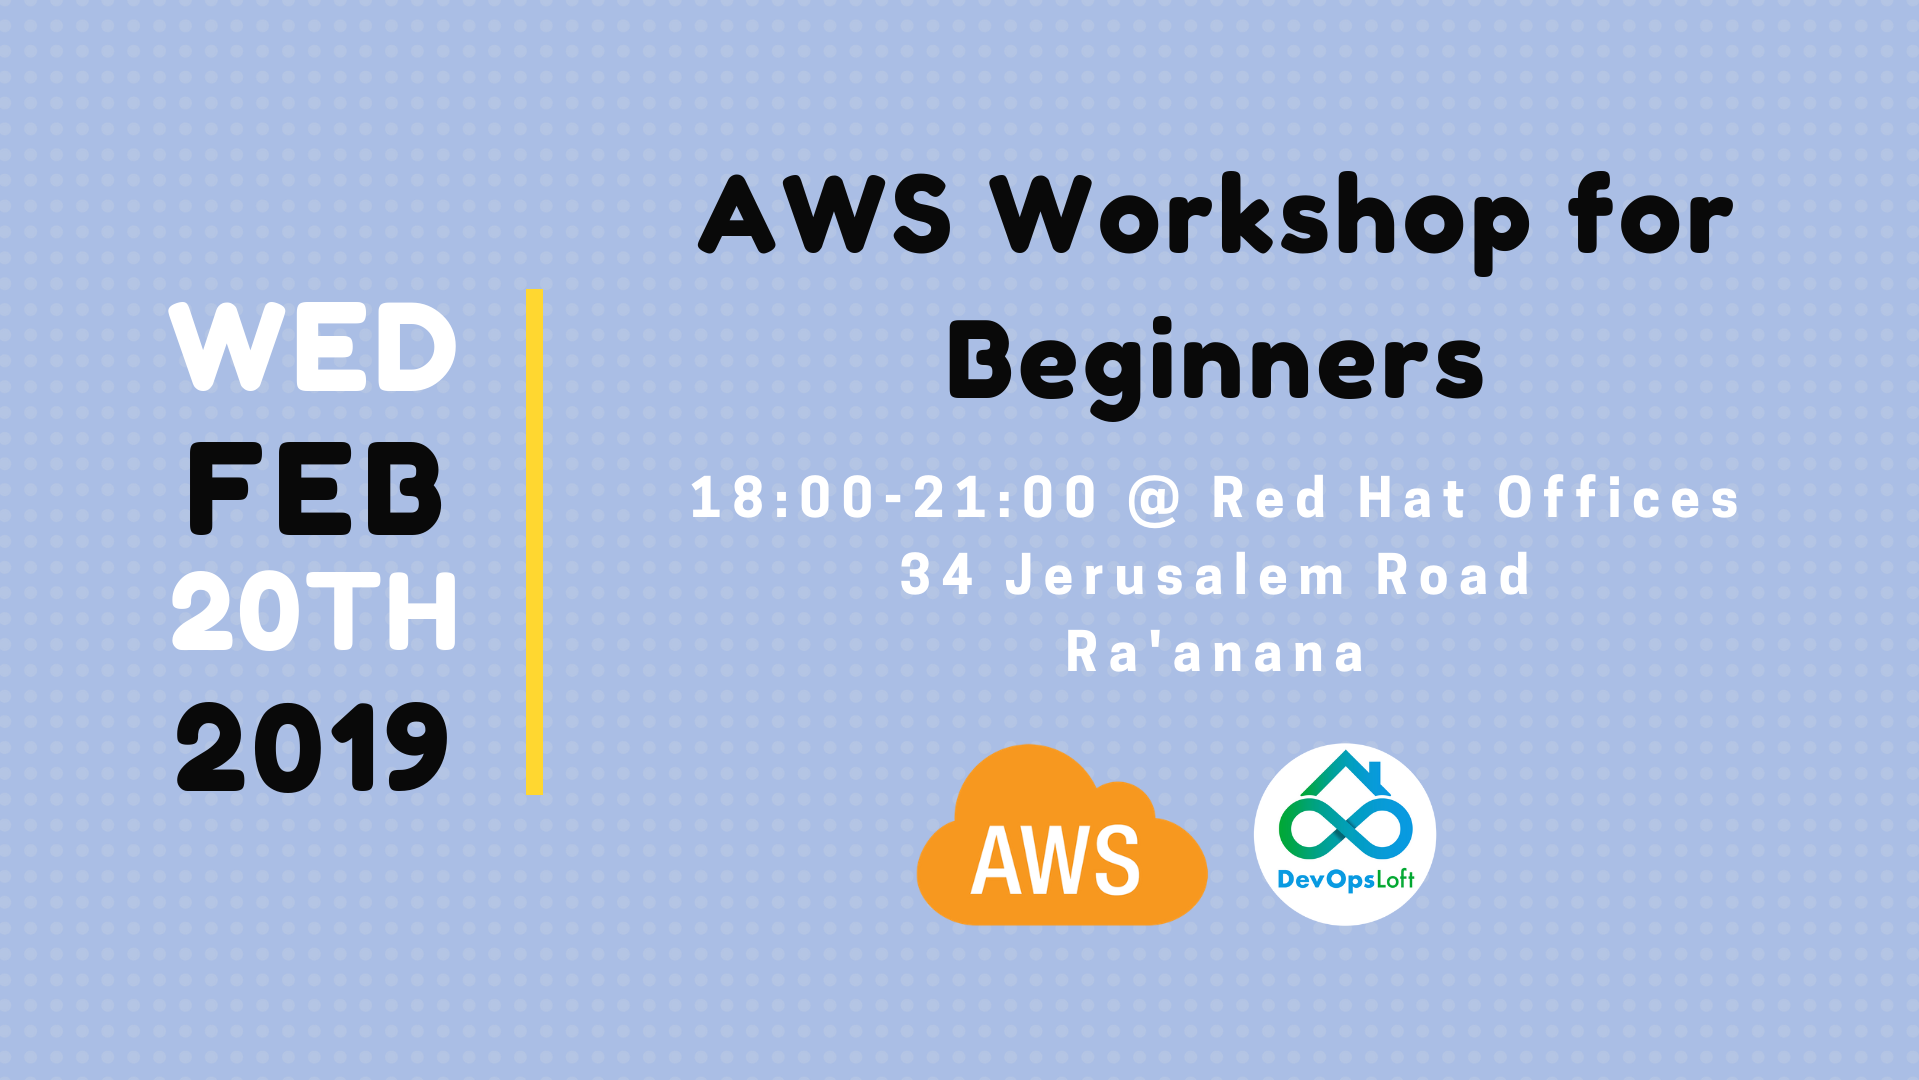 AWS workshop for beginners